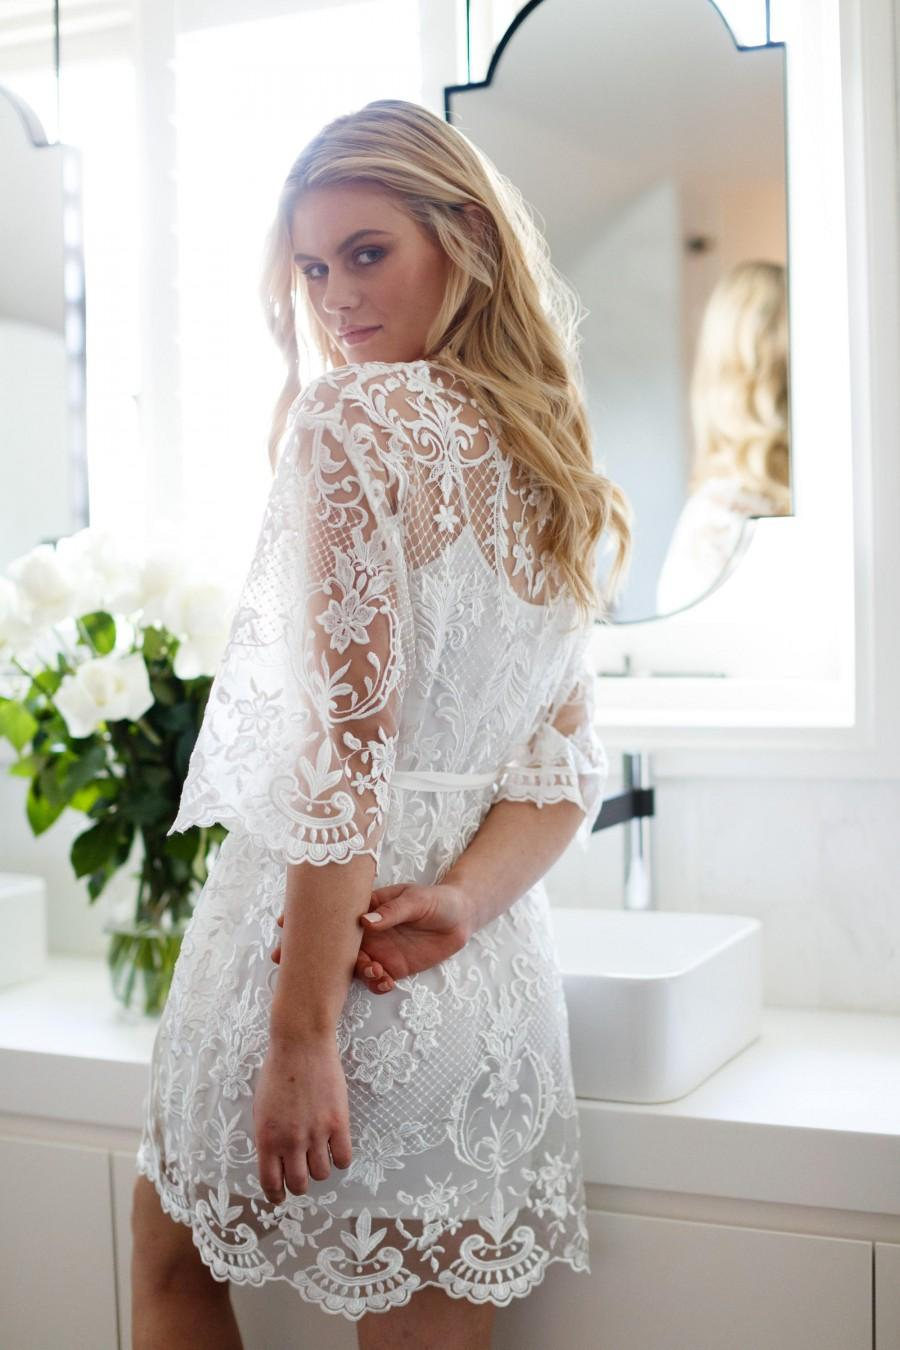 Hochzeit - Lace Bridal Robe // Bridesmaid Robes // Robe // Bridal Robe // Bride Robe // Bridal Party Robes // Bridesmaid Gifts / Celeste